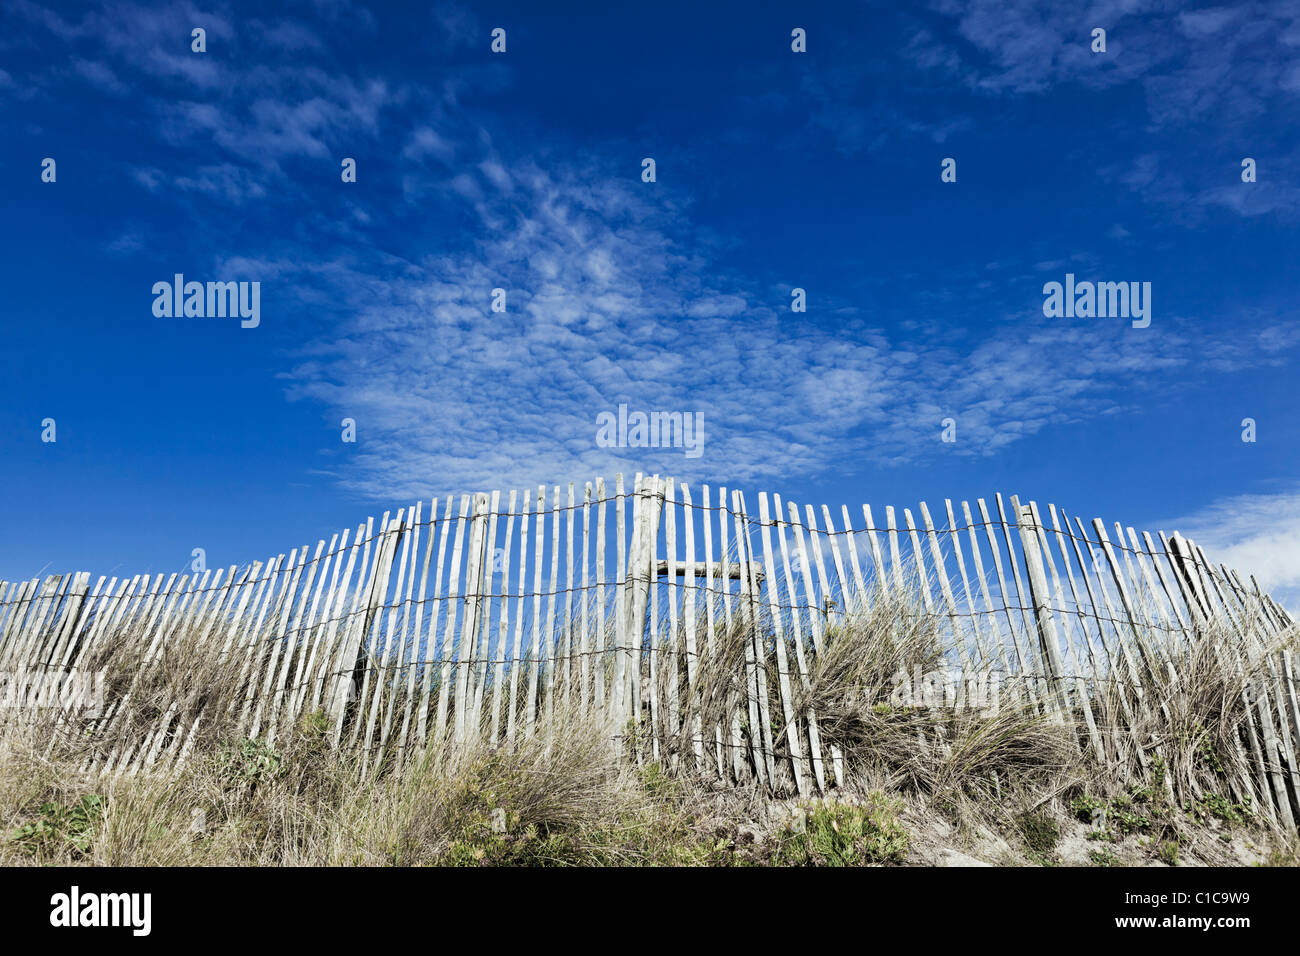 Wooden picket fence on sand dune with blue sky, France, Europe - Stock Image